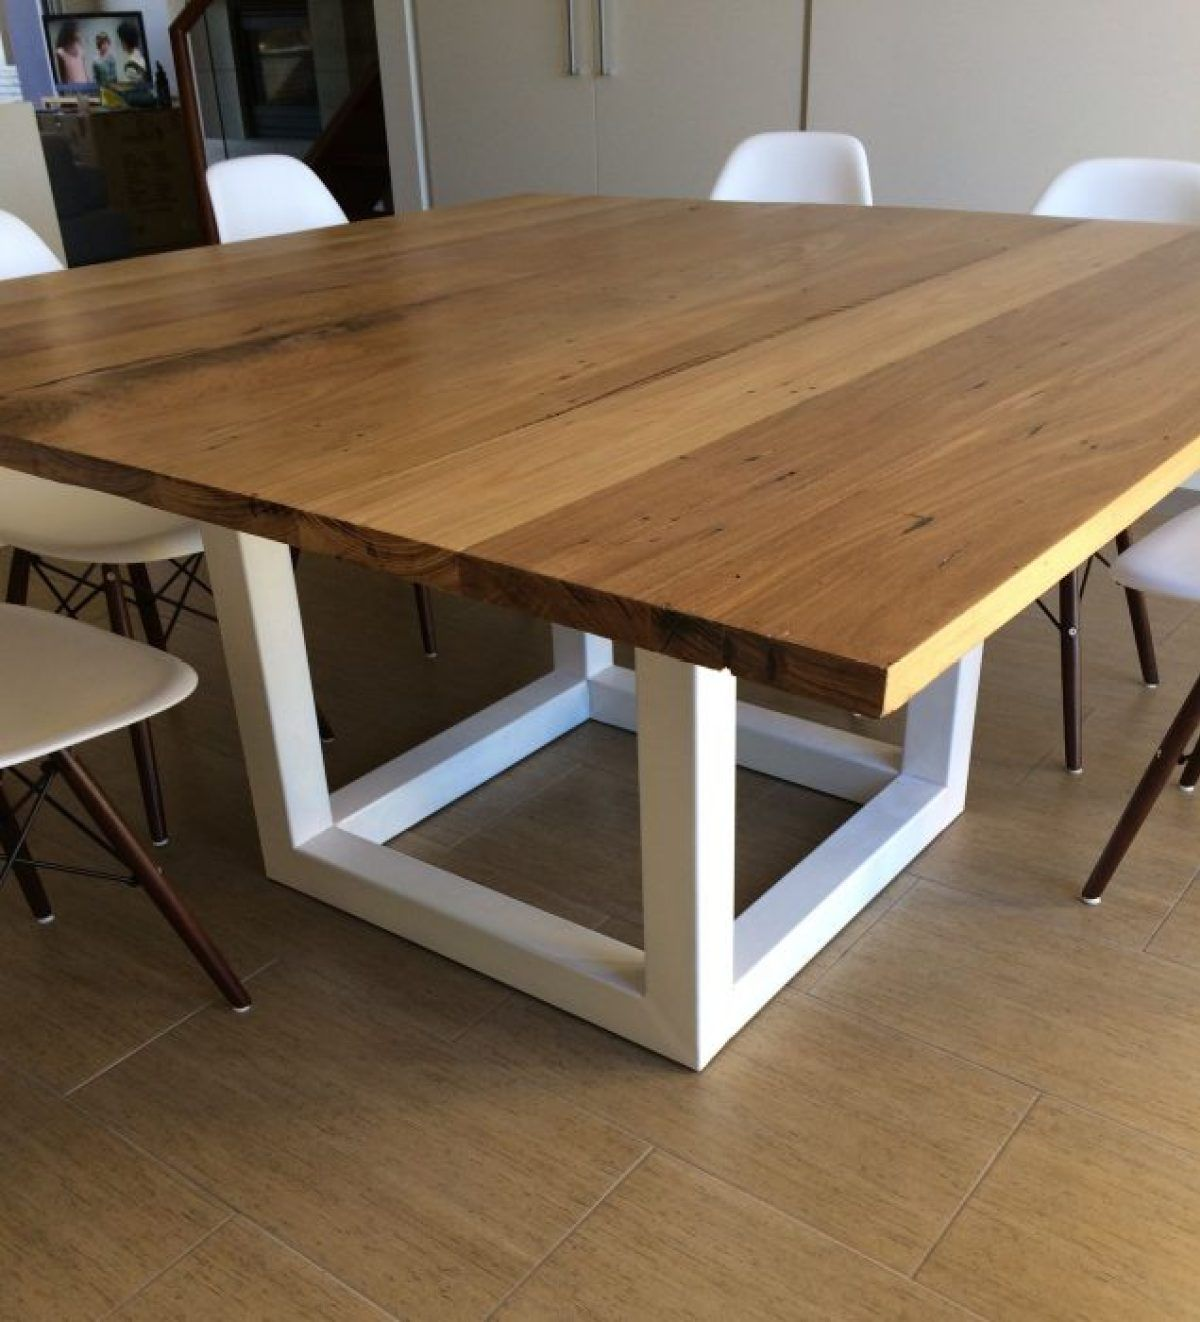 Some Important Considerations In Choosing Square Dining Table With Leaf Square Dining Tables Small Square Dining Table Dining Table With Leaf